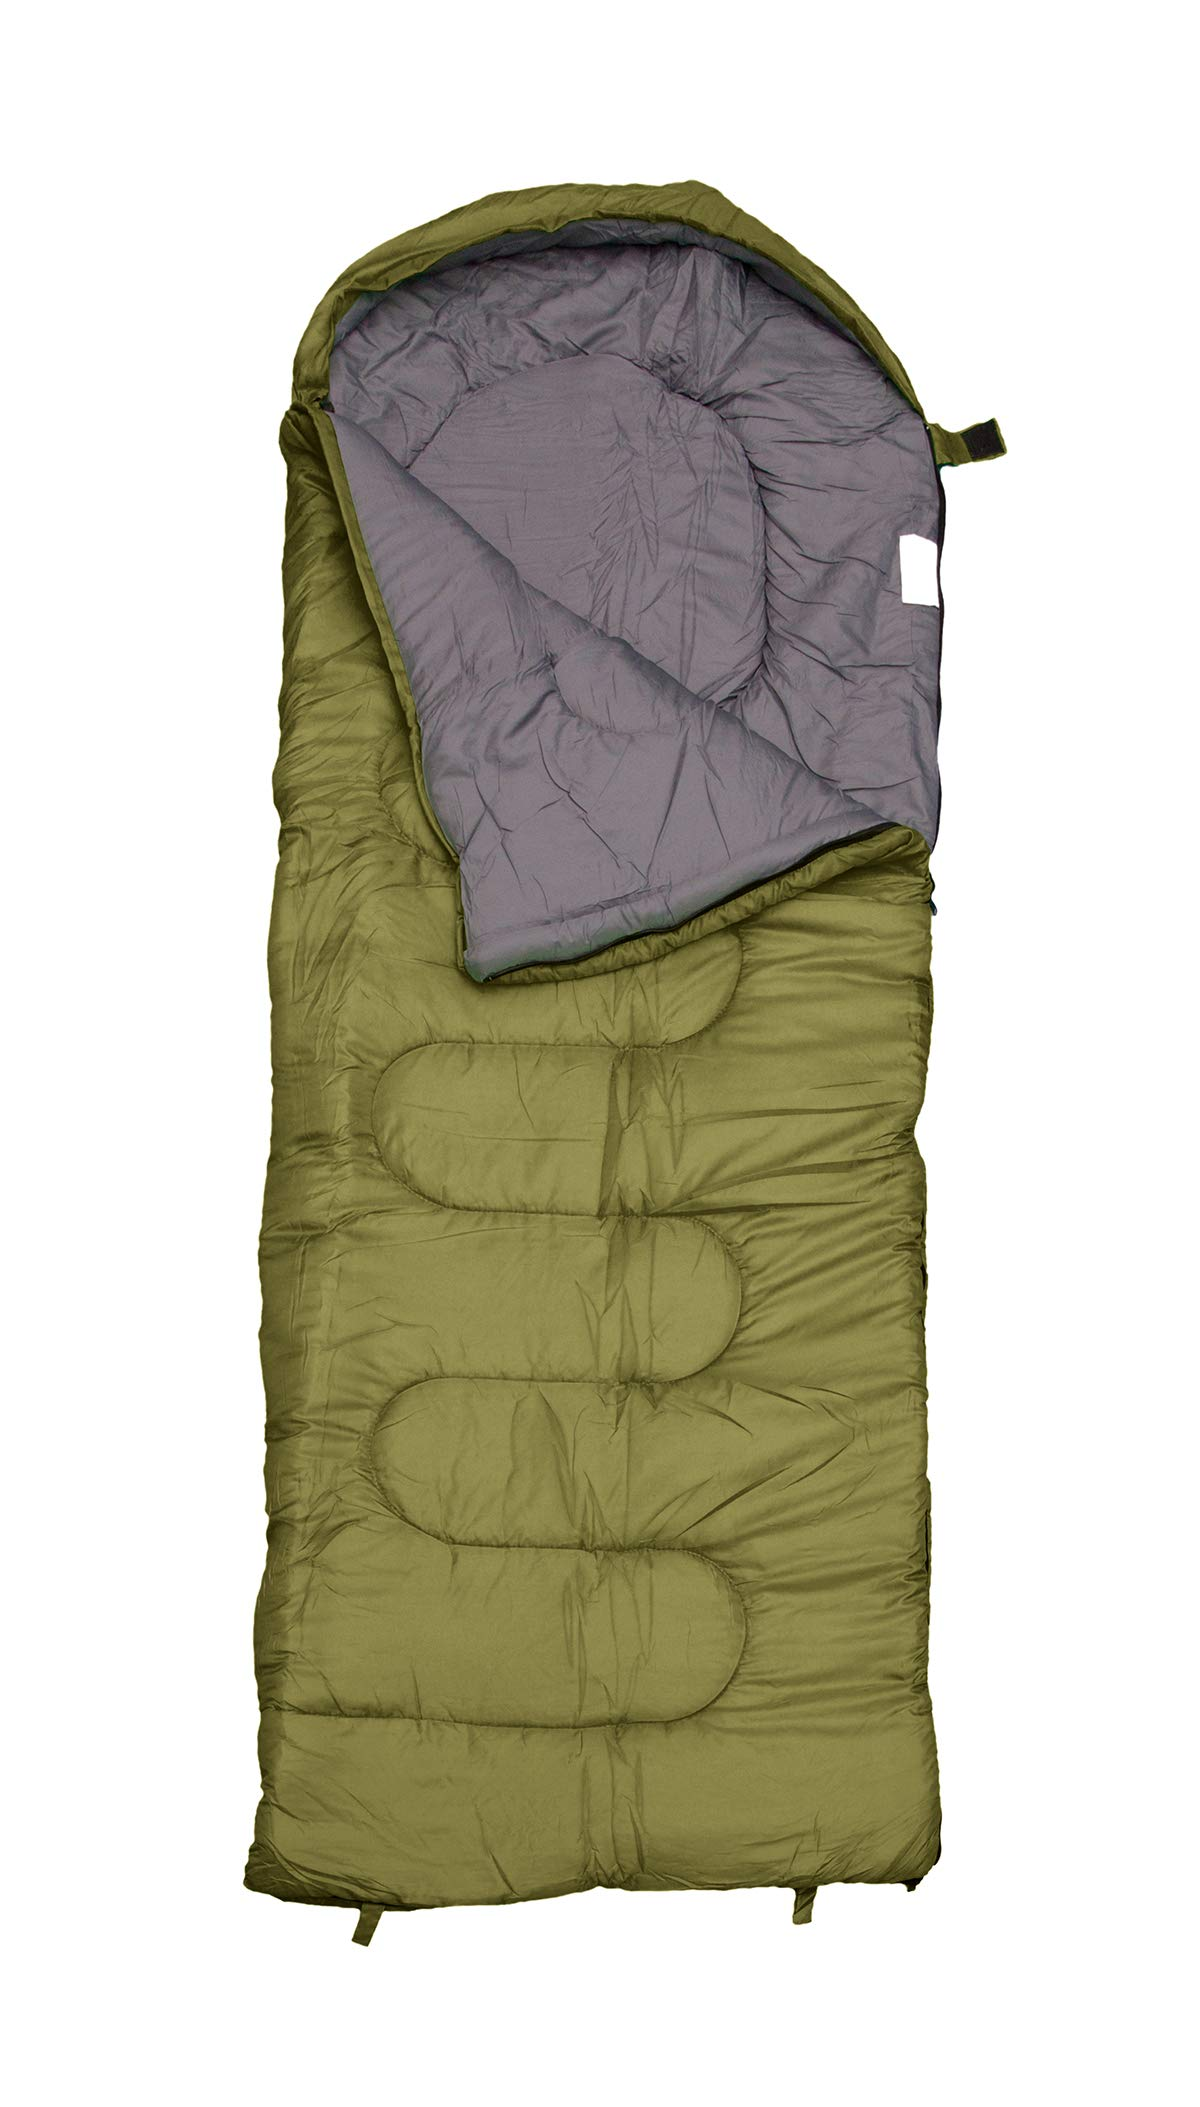 REVALCAMP Sleeping Bag for Cold Weather - 4 Season Envelope Shape Bags by Great for Kids, Teens & Adults. Warm and Lightweight - Perfect for Hiking, Backpacking & Camping 4